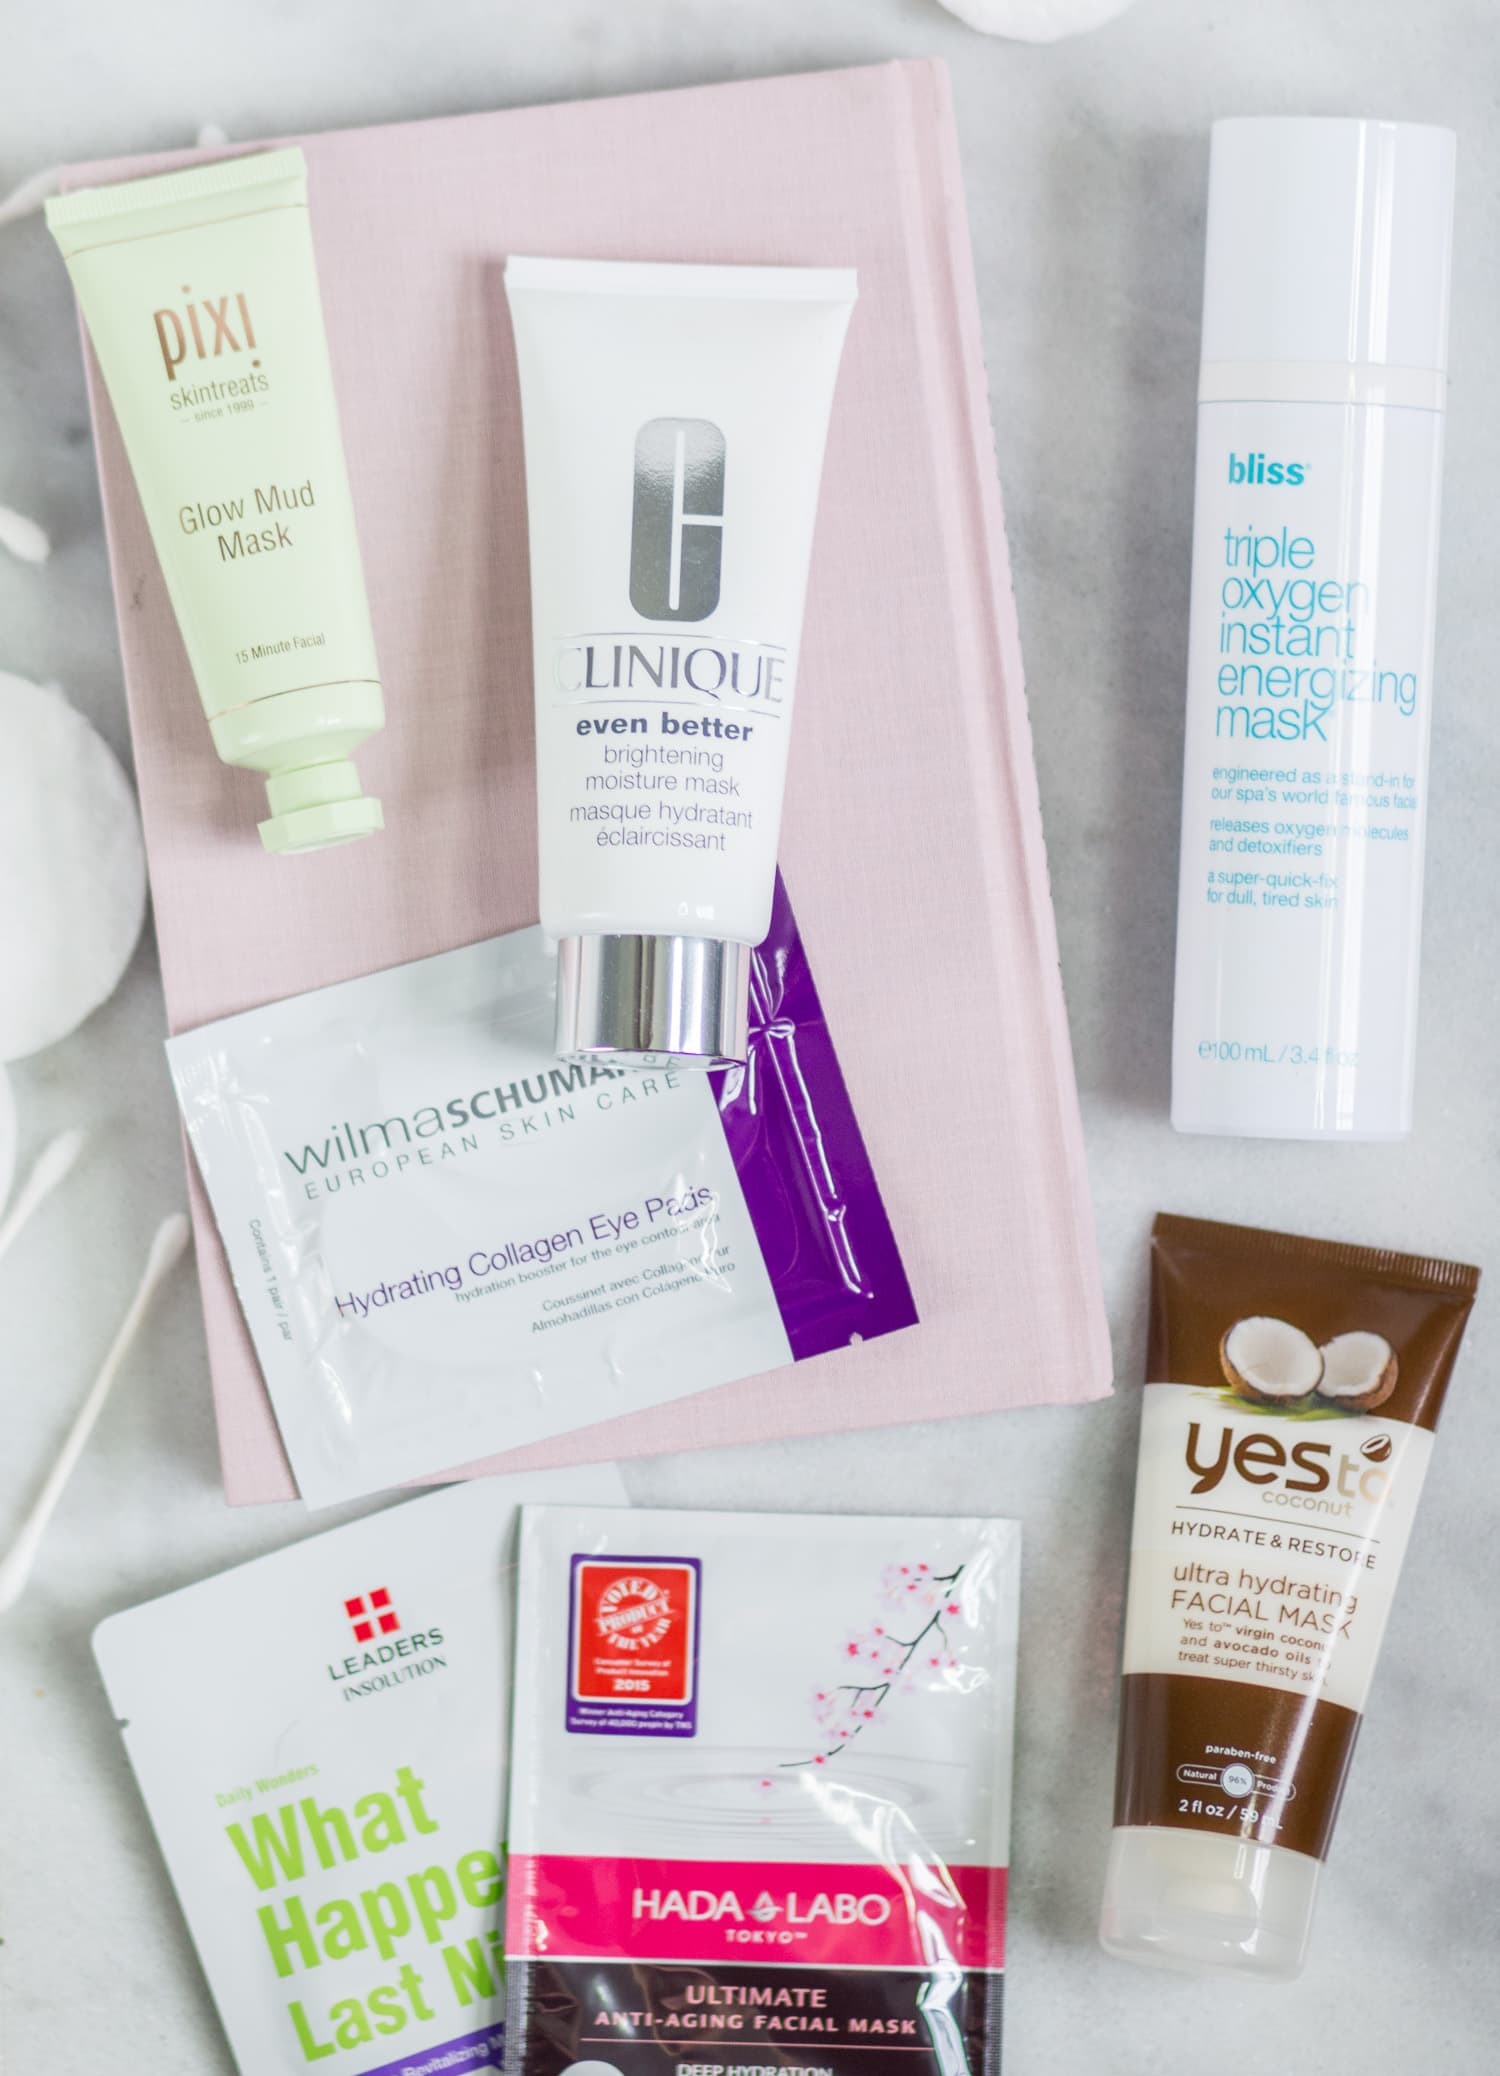 The best new skincare products for women in their 20s - including the best face masks, sheet masks, and hydrogel eye masks + a review of Pixi Glow Mud Mask, 100% Pure Bright Eyes Mask, Clinique Even Better Brightening Moisture Mask, Bliss Triple Oxygen Instant Energizing Mask, Yes to Coconut Ultra Hydrating Facial Mask, Wilma Schuman Hydrating Collagen Eye Pads, LEADERS Daily Wonders What Happened Last Night Revitalizing Mask, Hada Labo Tokyo Ultimate Anti-Aging Facial Mask, 100% Pure Ginseng Collagen Boost Mask and Green Tea Water Bomb Mask by beauty blogger Ashley Brooke Nicholas